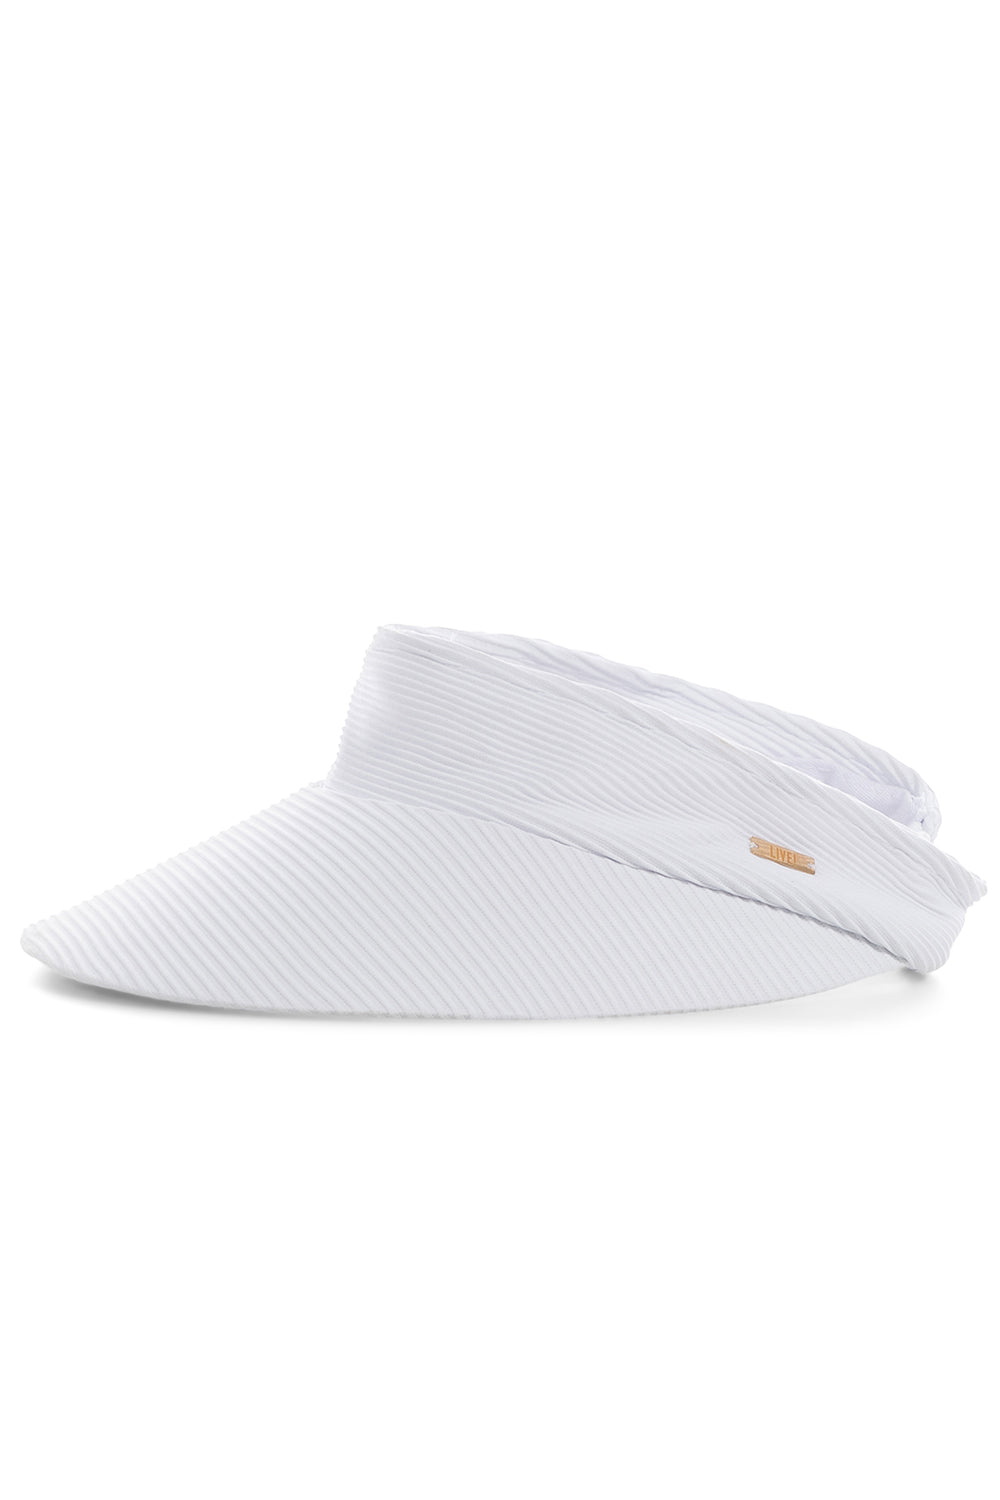 Breeze Visor